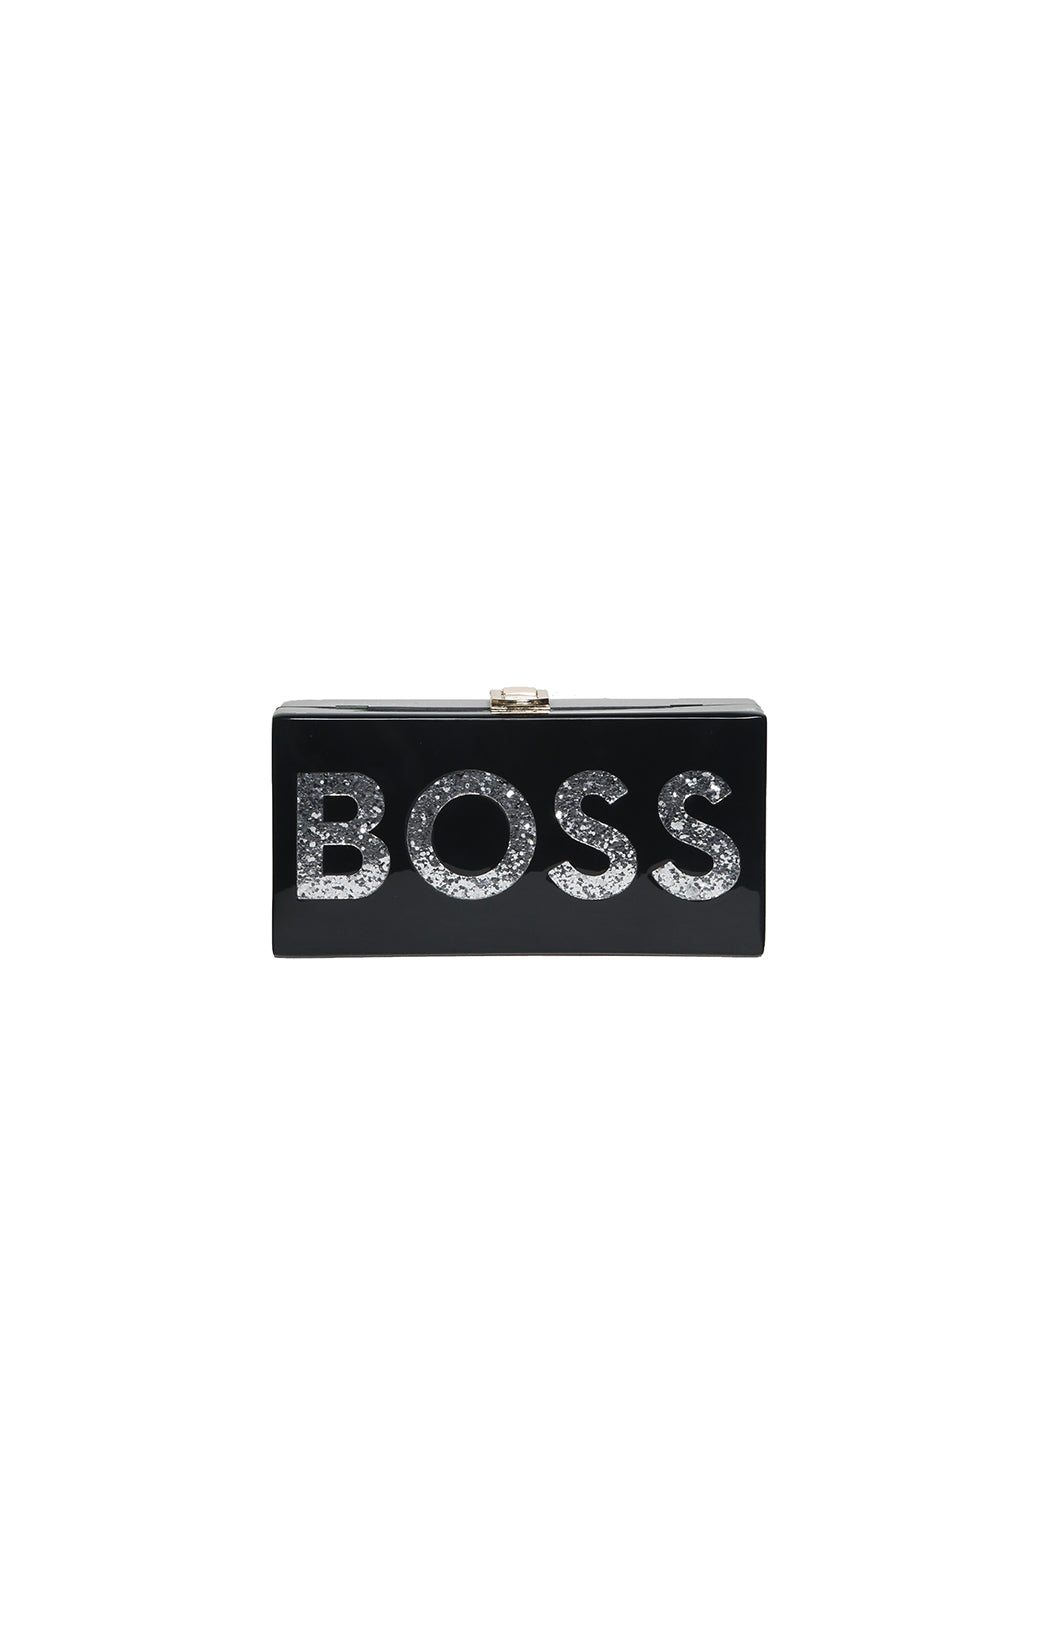 Front view of MILLY BOSS Clutch with Tags Size: 8 x 4 x 2 in.